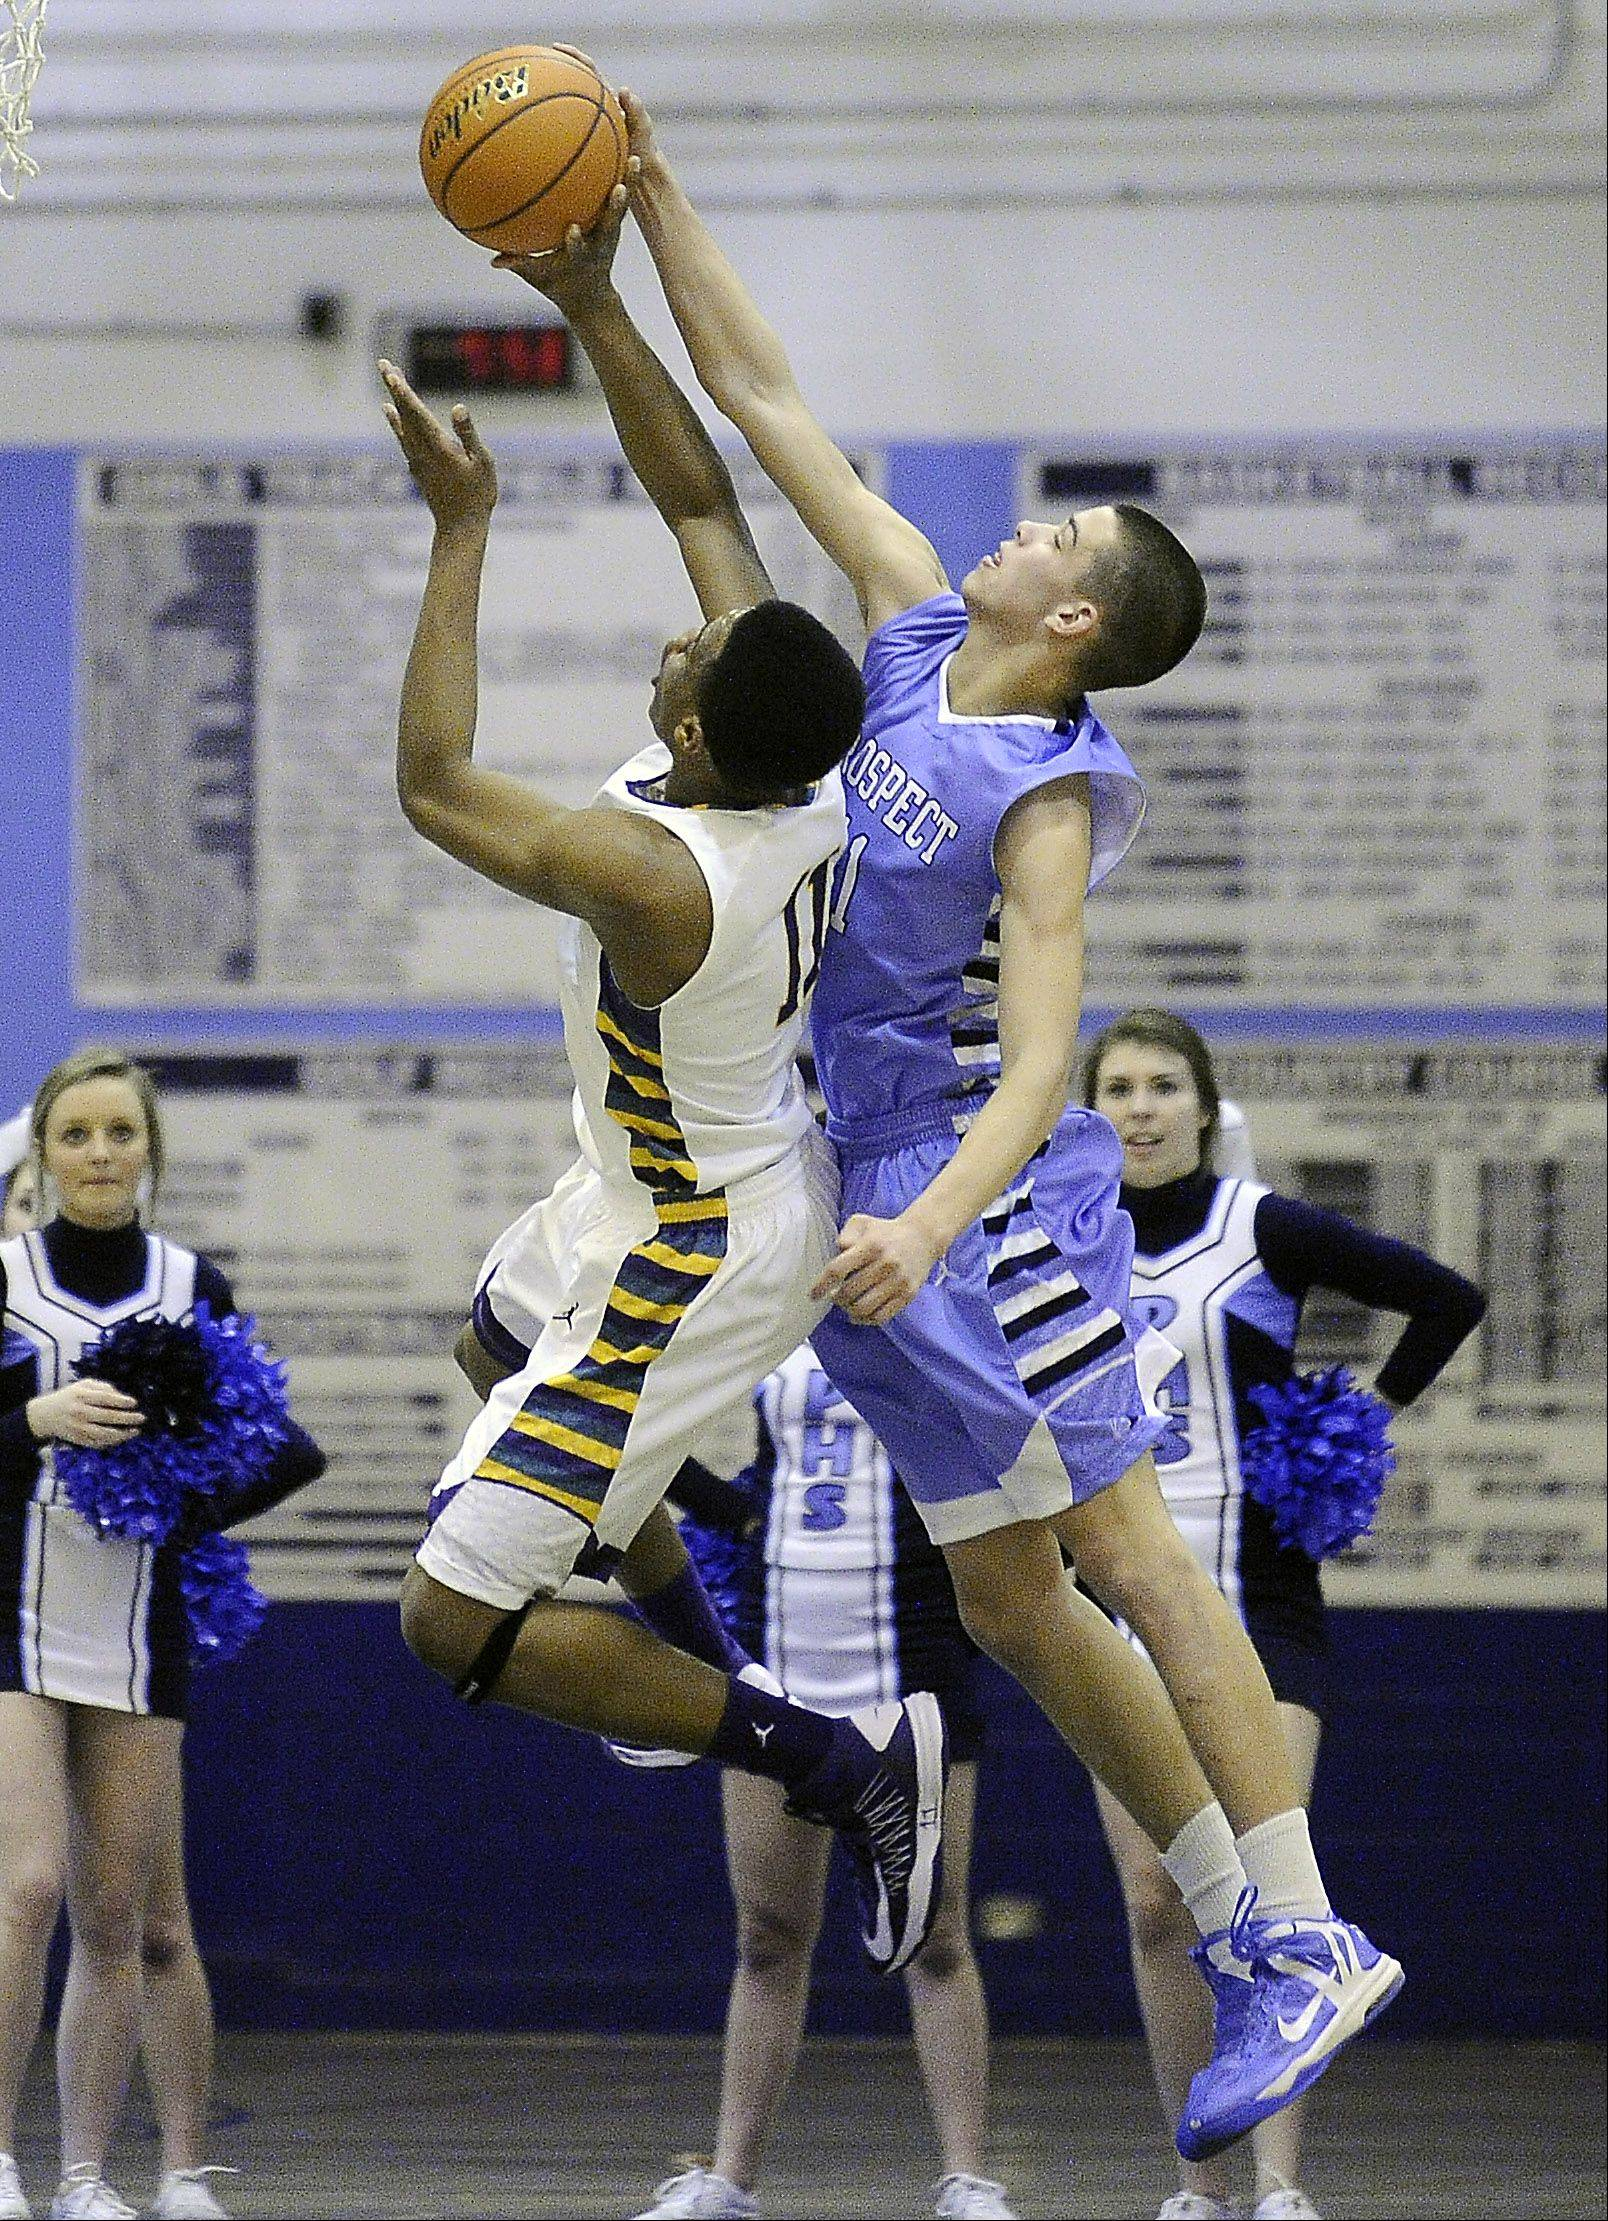 Prospect's Devin O'Hara swipes the ball away from Waukegan's Jerome Davis under the basket in the first half.